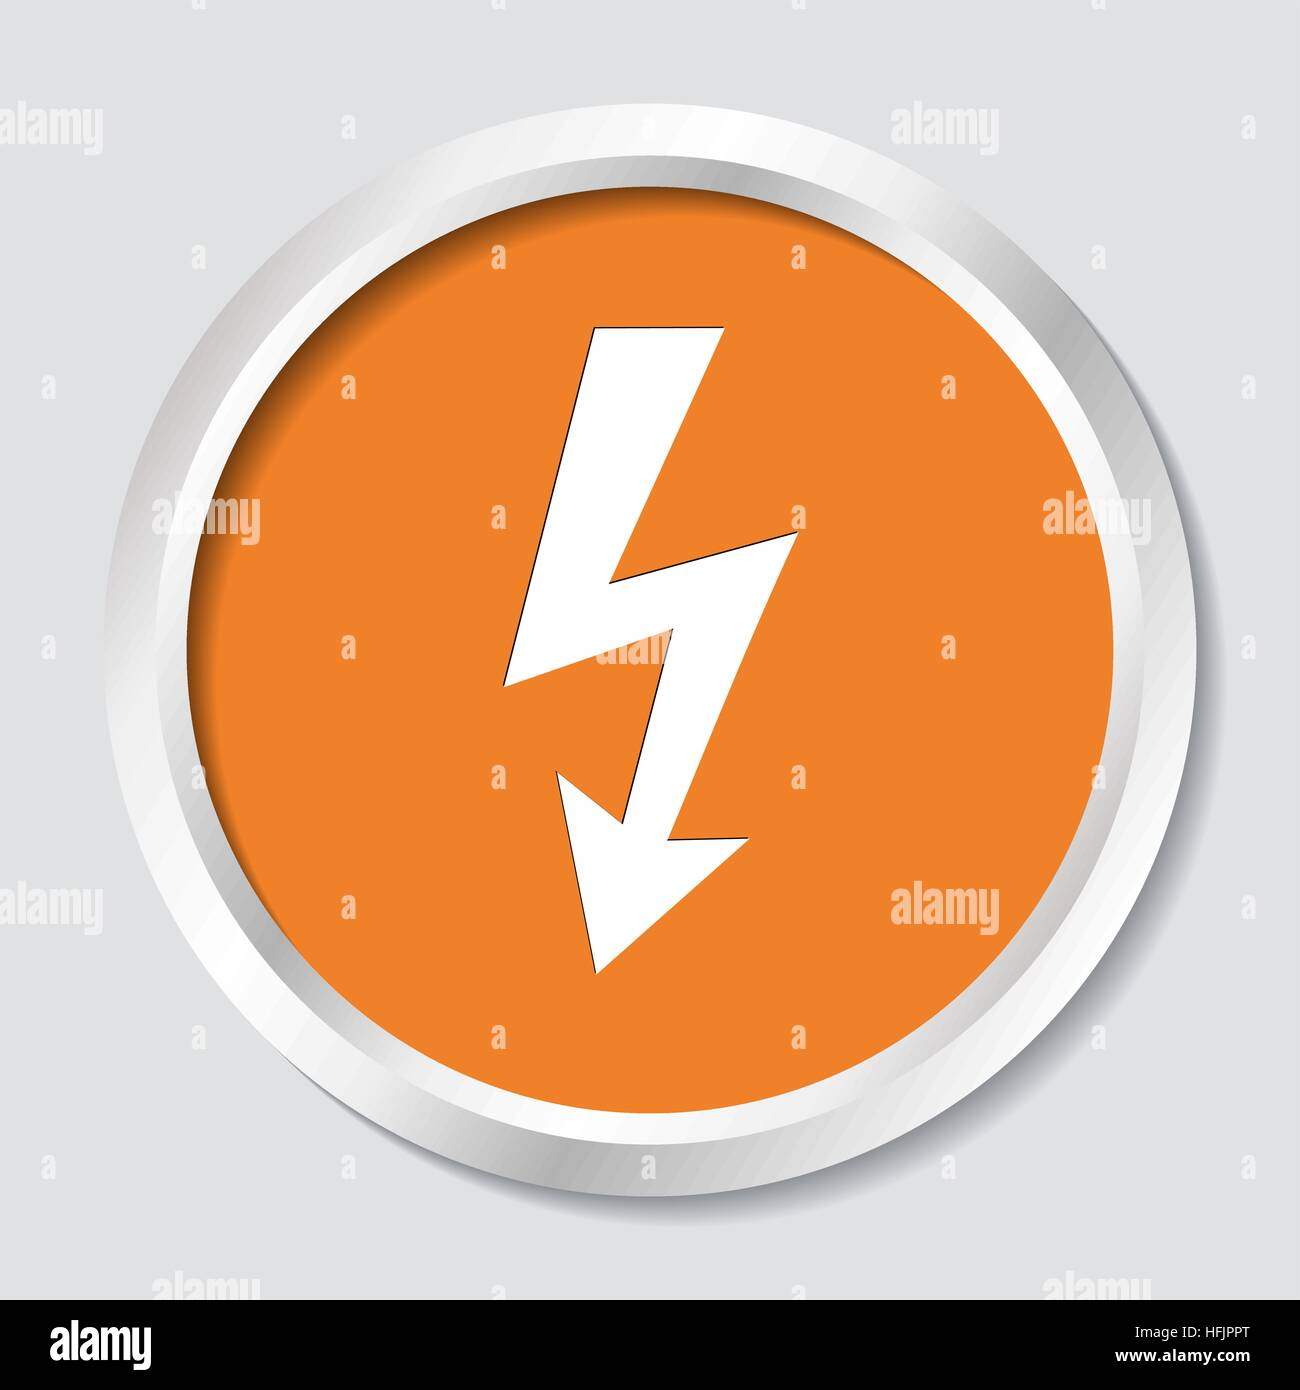 Famous How To Wire Ssr Thick Ibanez Pickup Wiring Round Ibanez Rg Wiring Fender S1 Switch Wiring Diagram Young Coil Tap Wiring DarkStrat Wiring Bridge Tone White Vector High Voltage Symbol On Orange Button Stock Vector Art ..